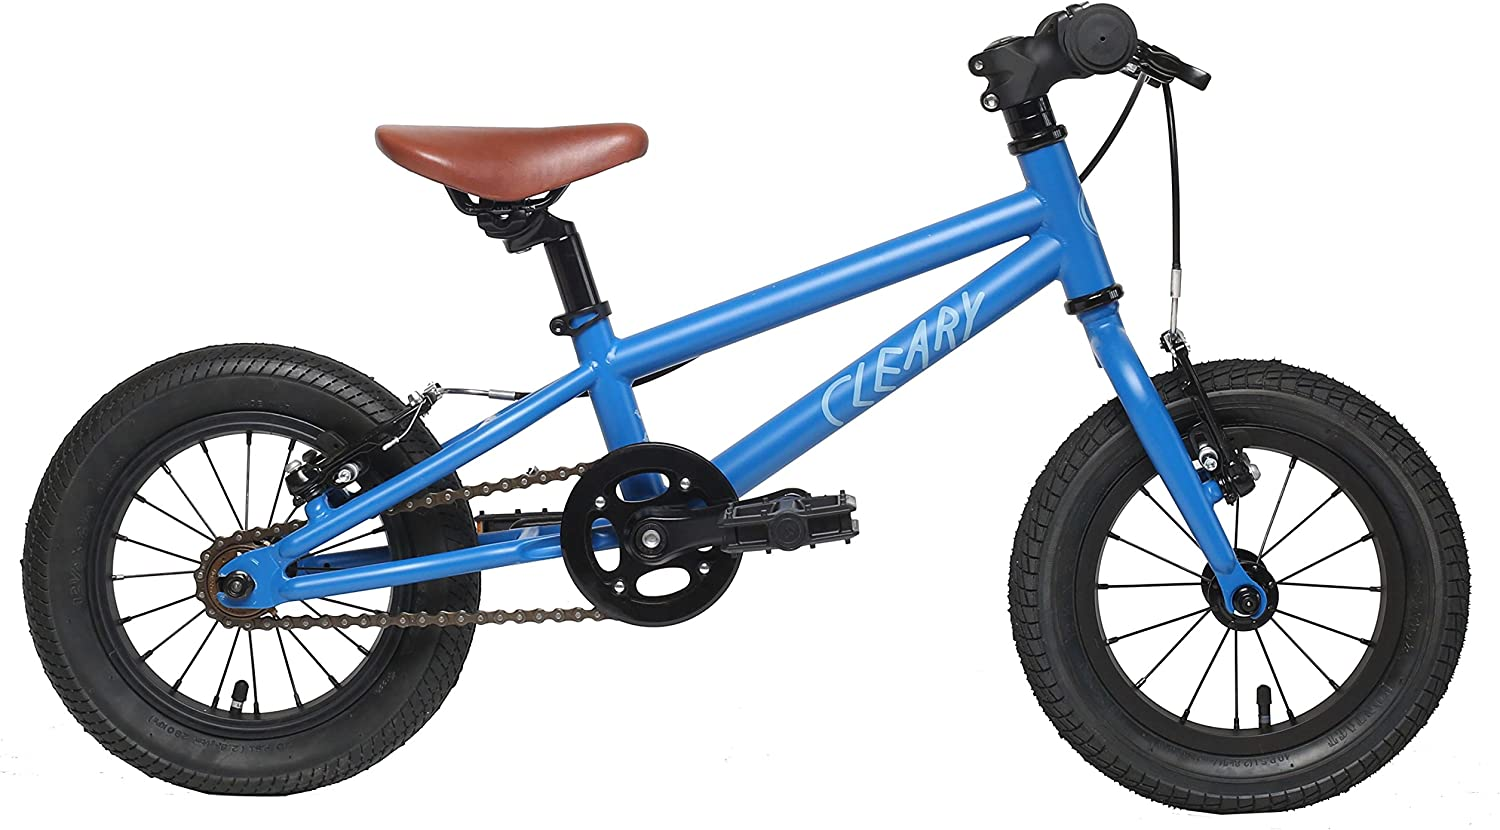 Cleary Bikes 12 Inch Single Speed Bikes for Kids, Lightweight, Gecko, Multiple Colors